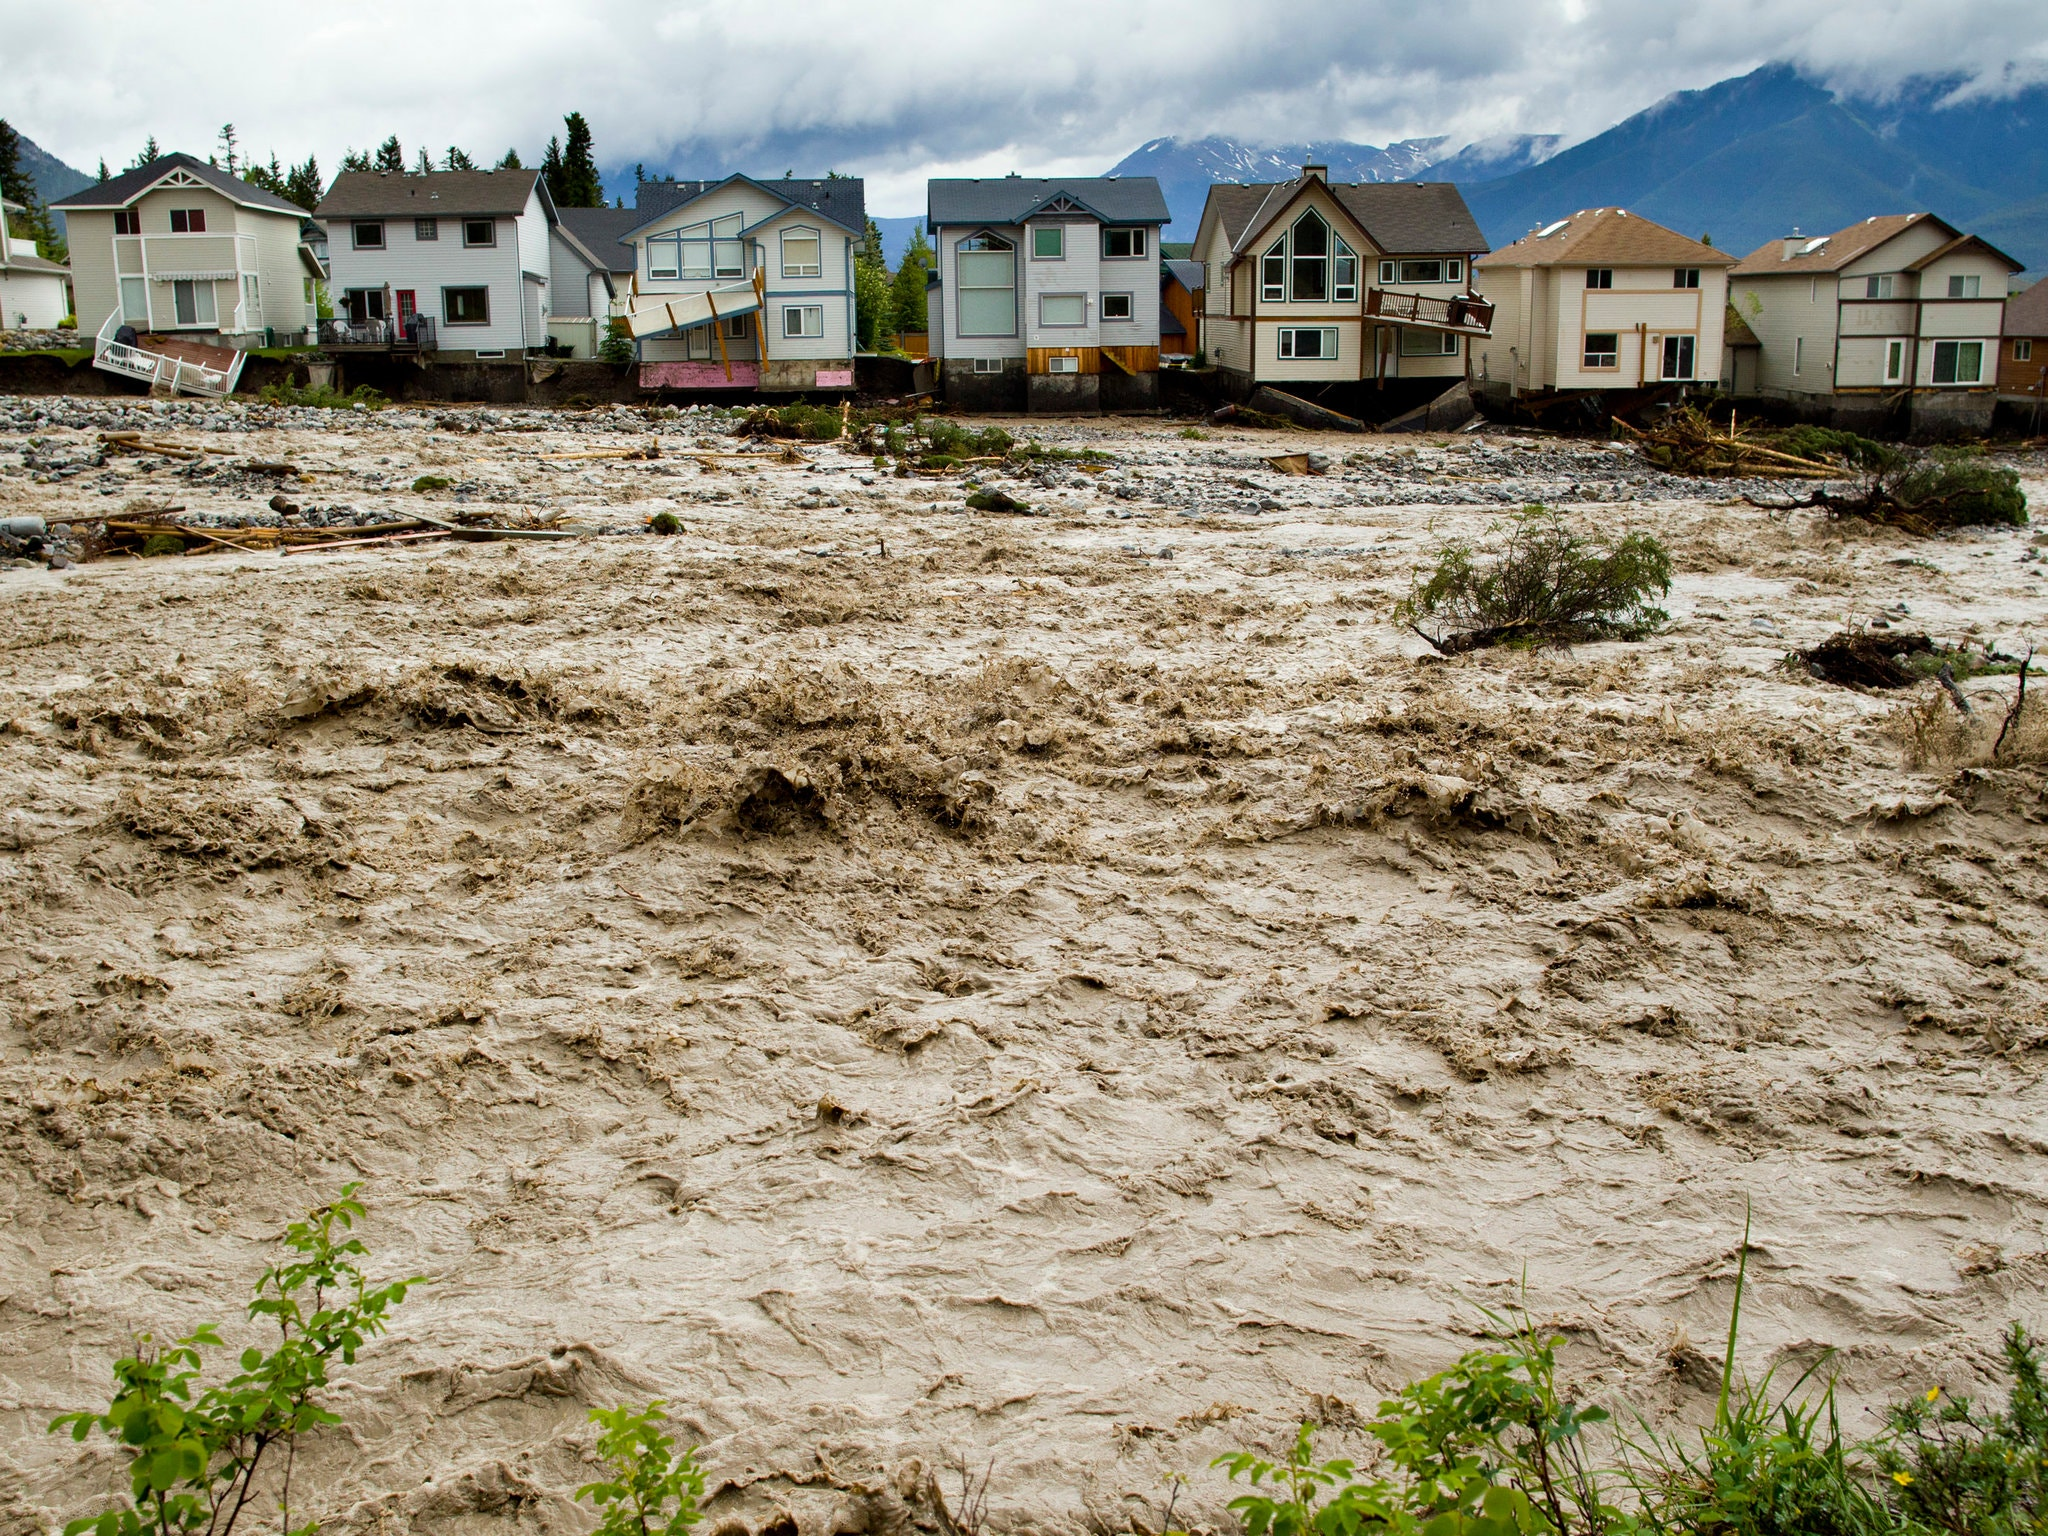 Canada Tells Flood Victims: Live Someplace Else